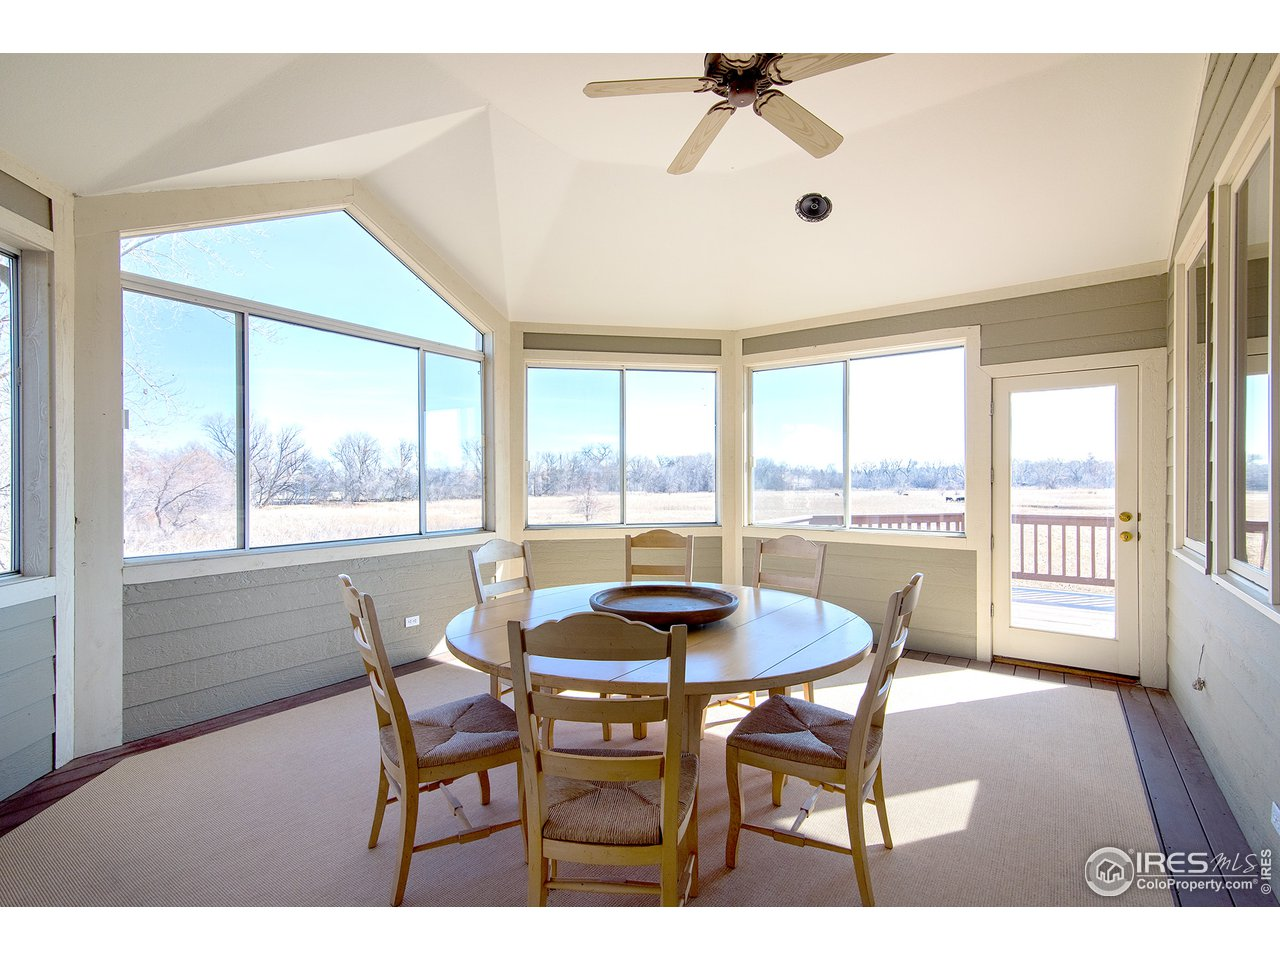 screened in porch offers many uses